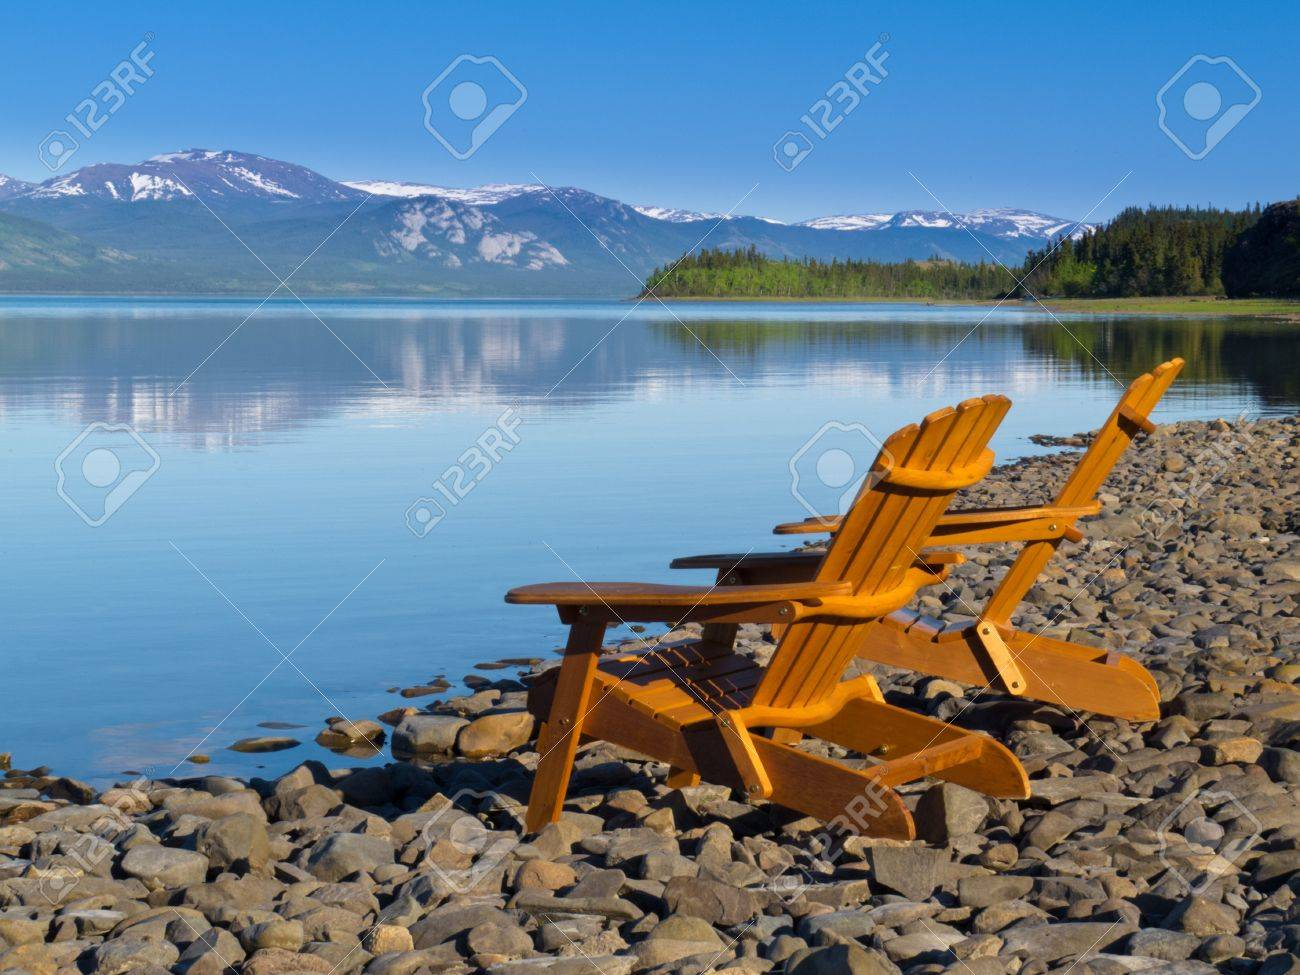 Delightful Two Empty Wooden Adirondack Chairs Or Muskoka Deckchairs On Stony Shore  Overlooking Scenic Calm Lake Laberge